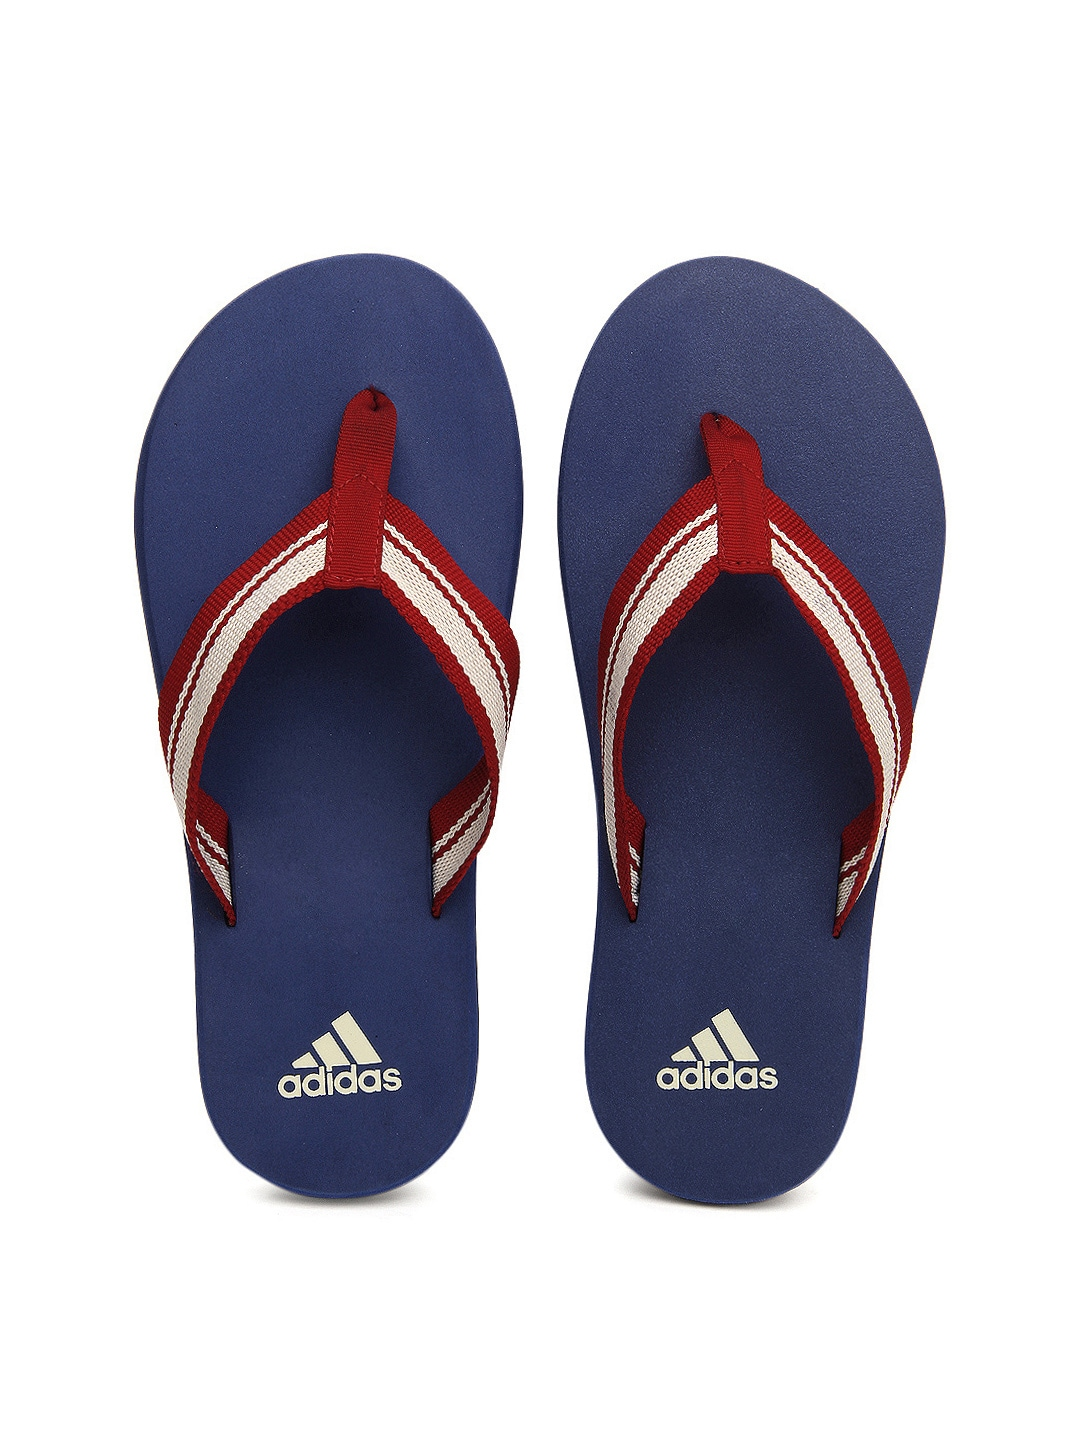 Adidas slippers for Uomo on sale >off44%)